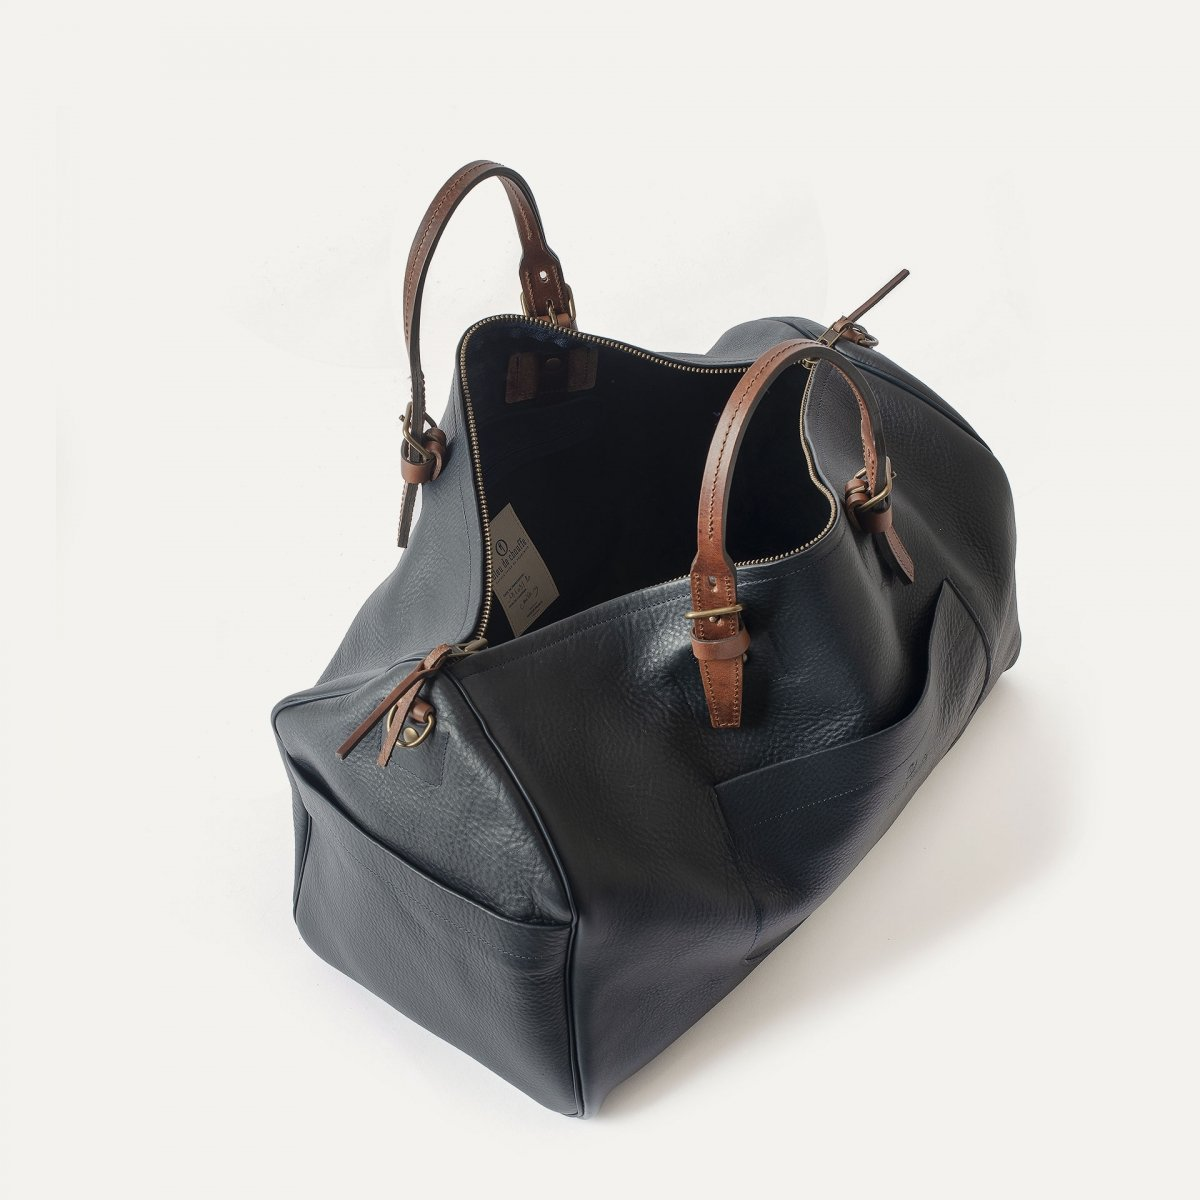 Hobo Travel bag - Navy Blue (image n°4)